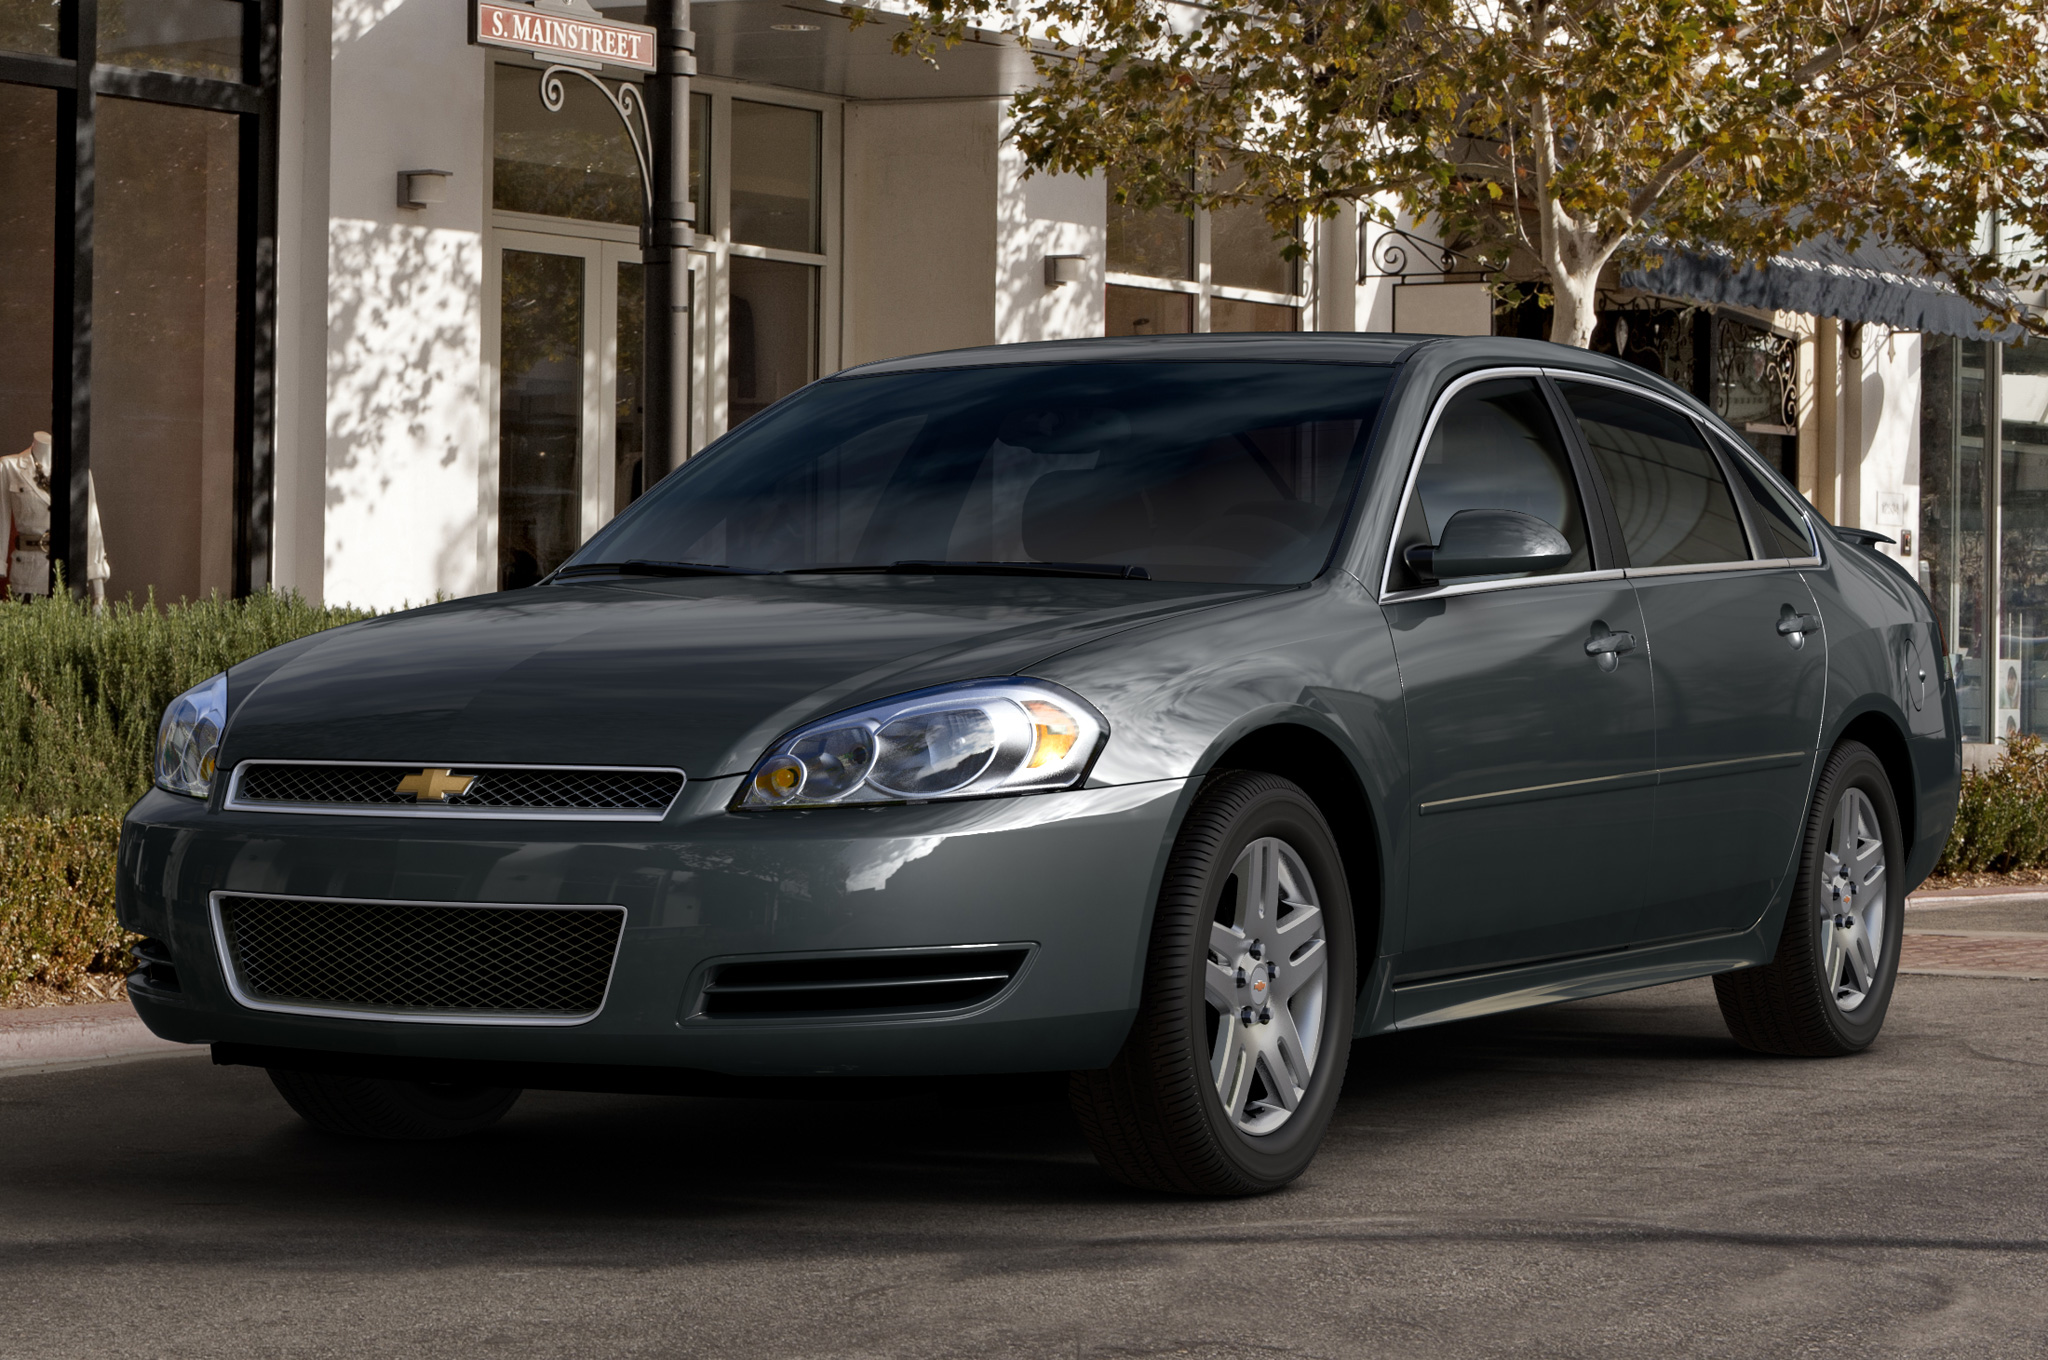 medium resolution of chevrolet impala limited production extended to 2016 for fleet use